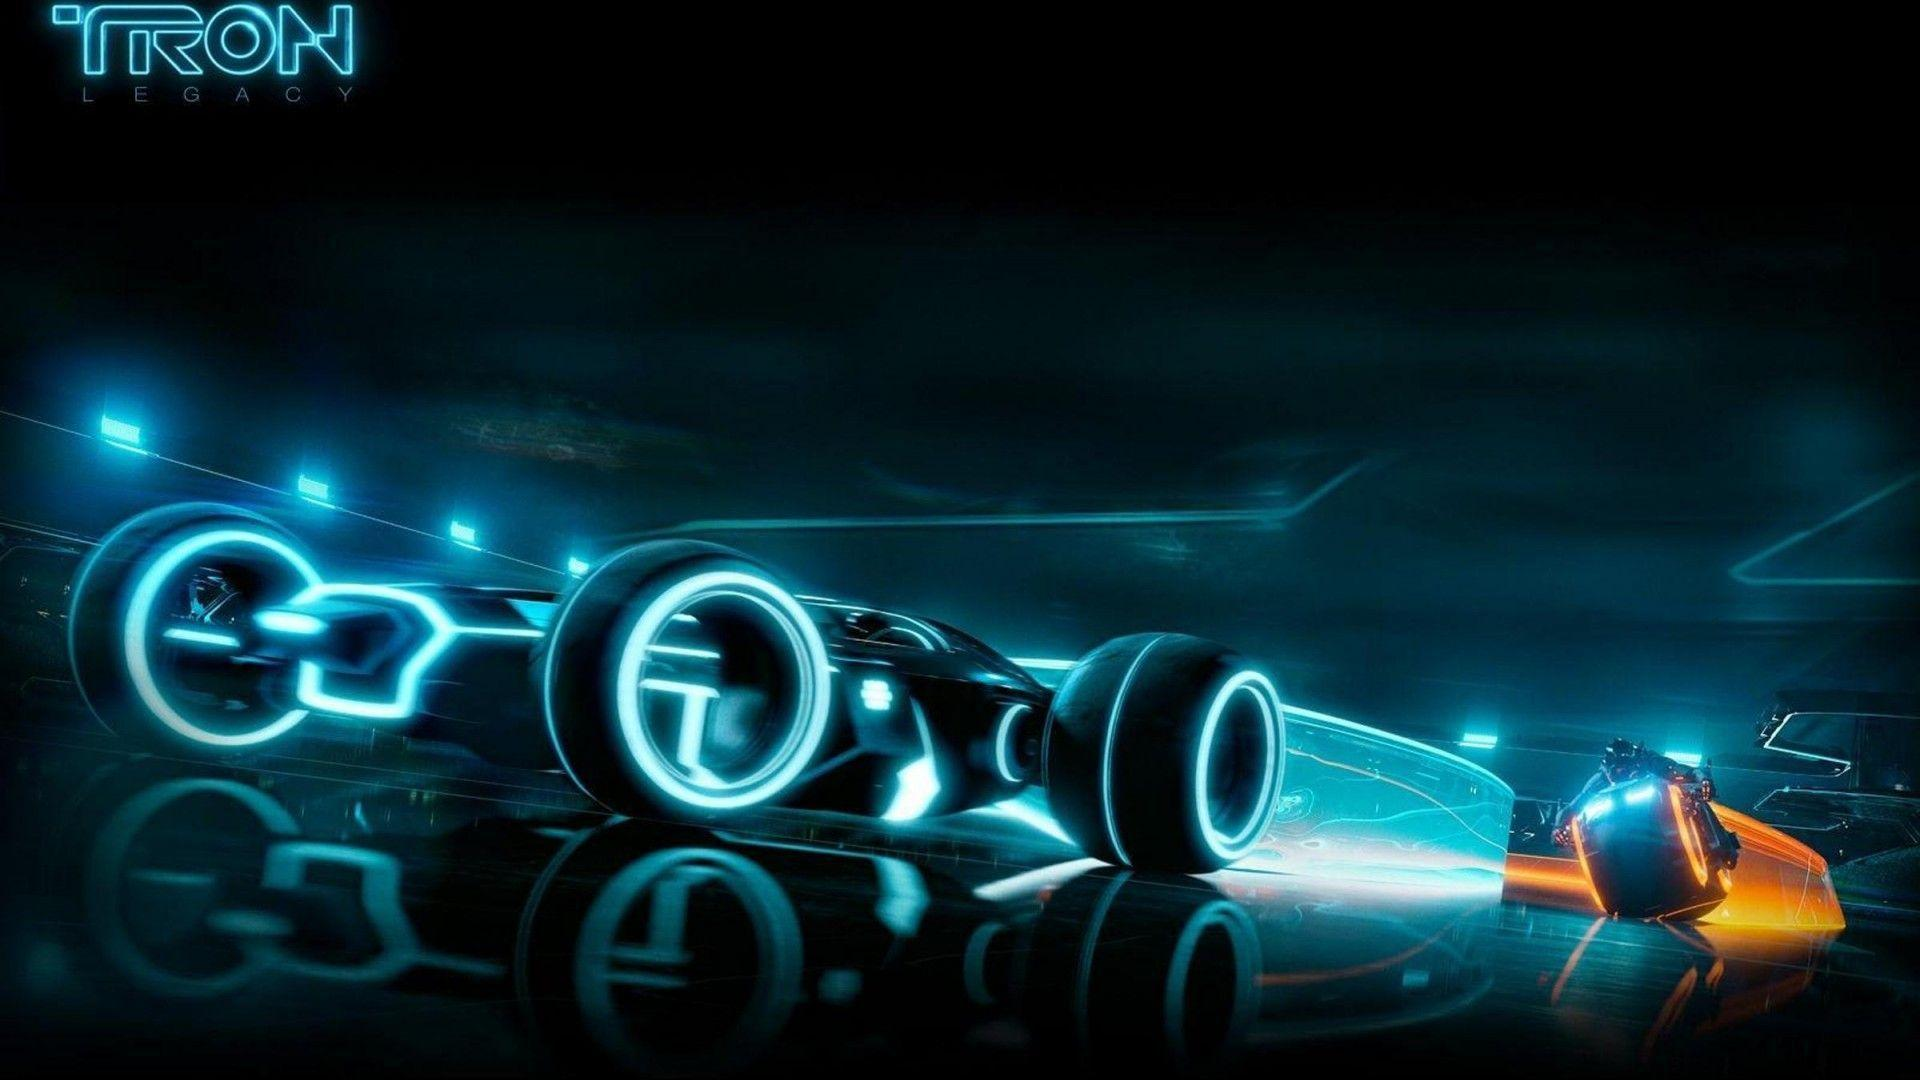 Tron Legacy Wallpapers 1080p Wallpaper Cave